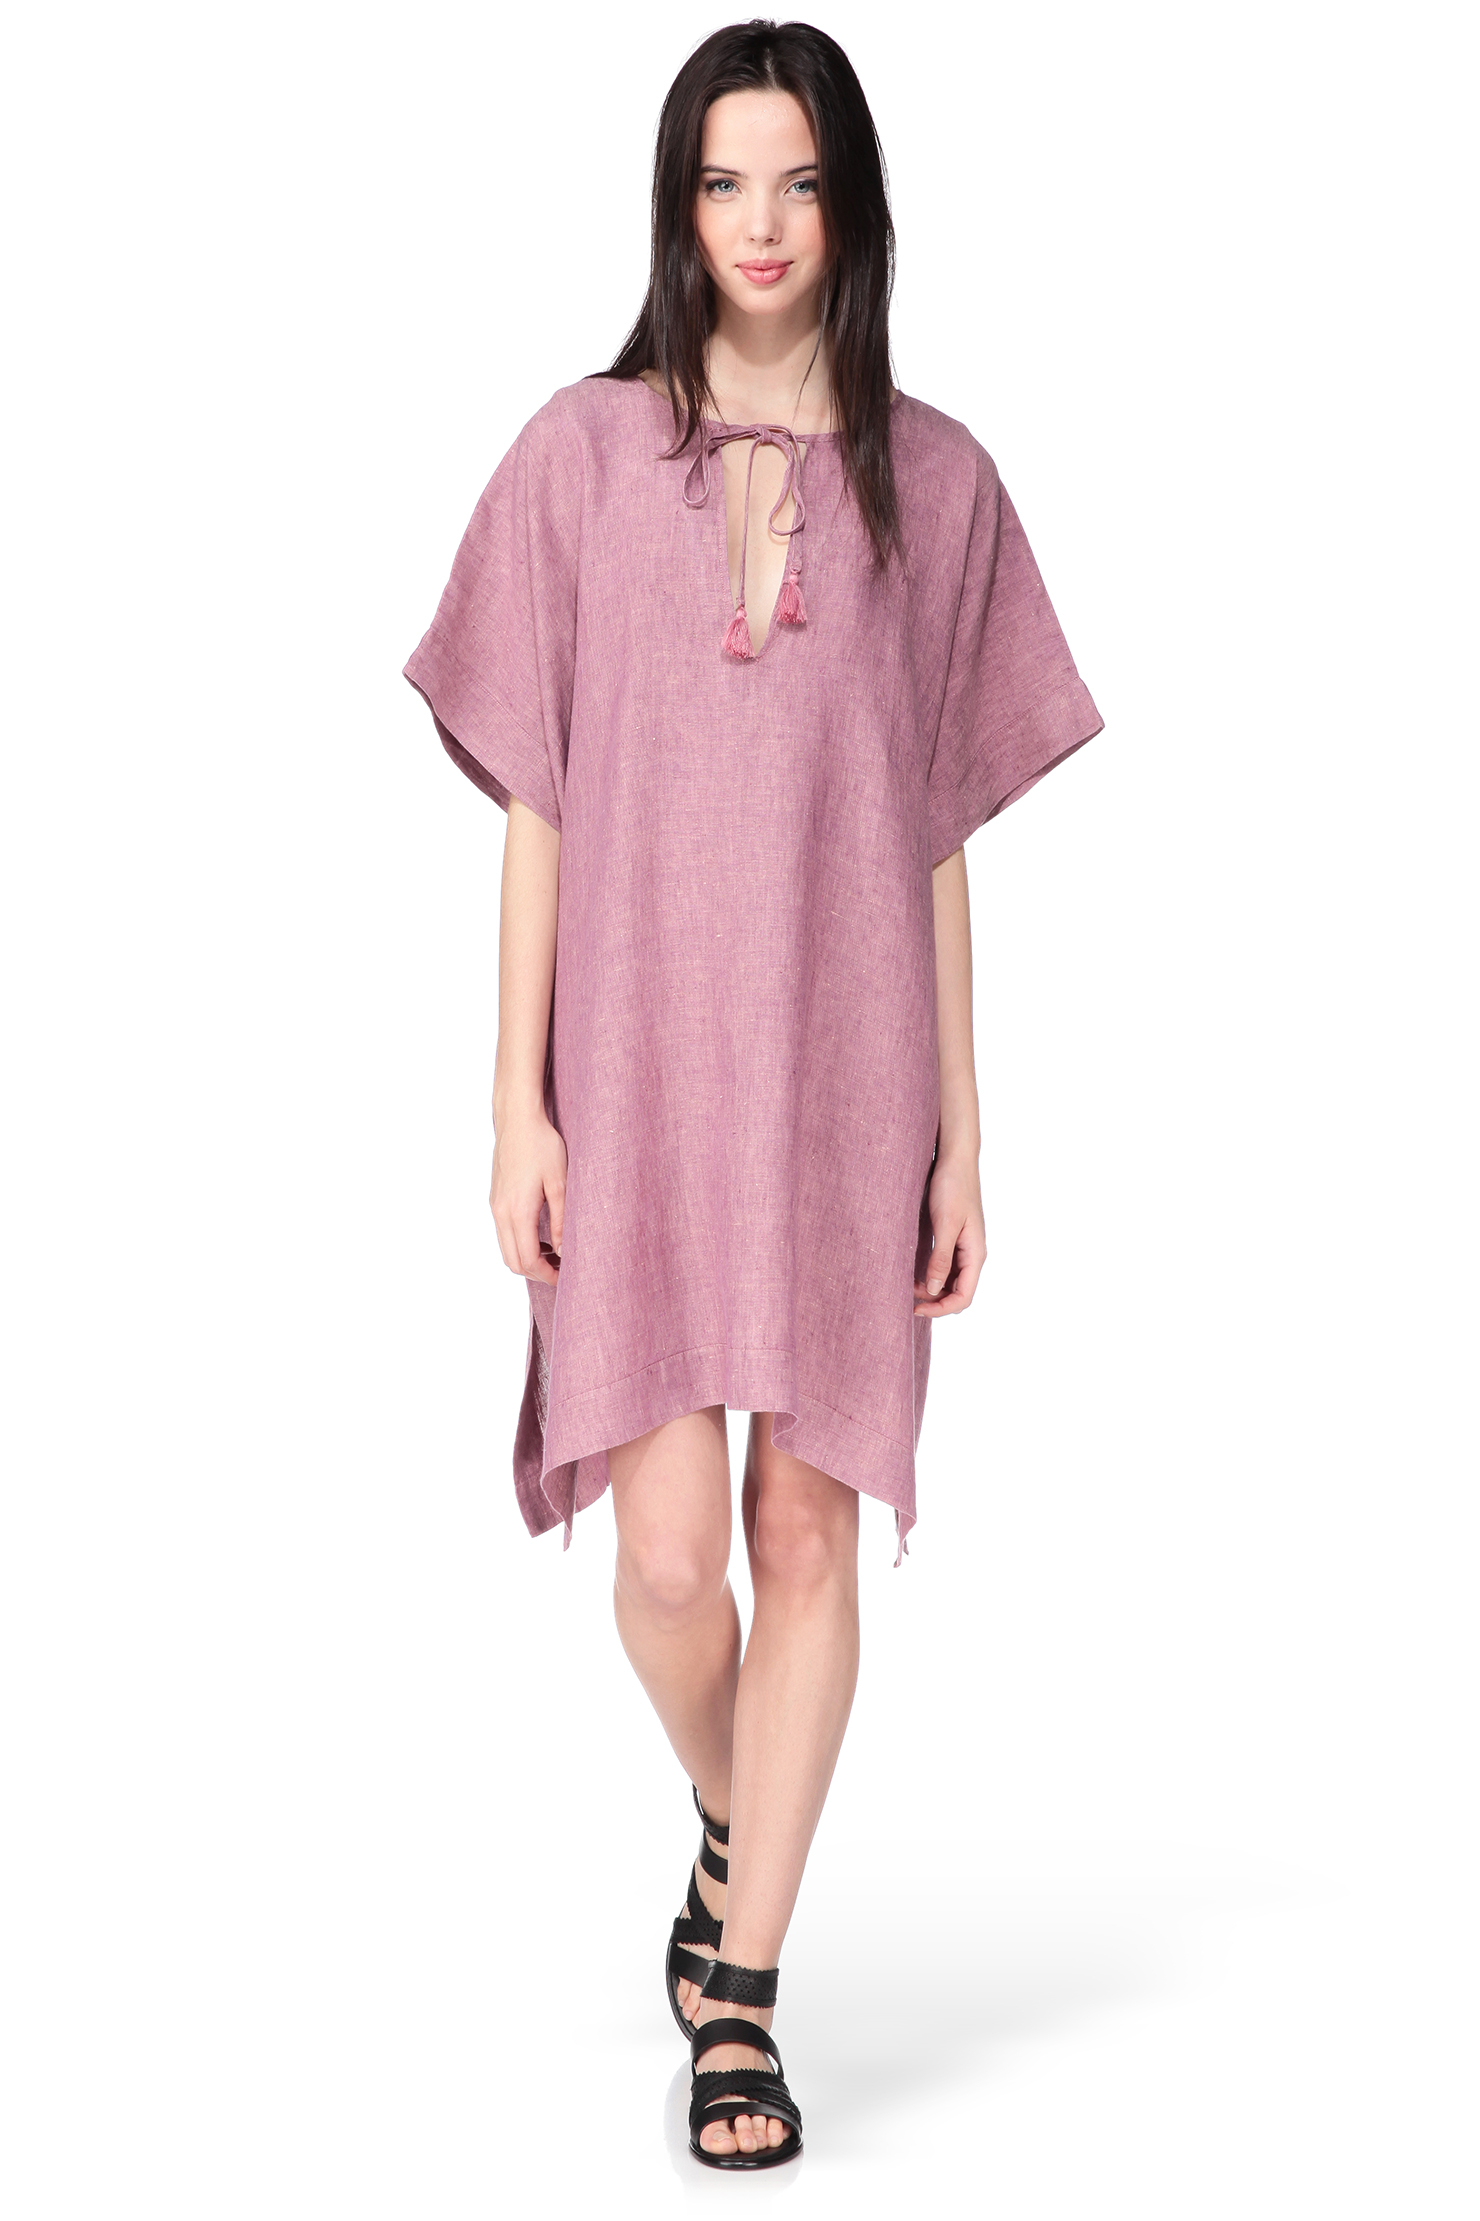 0039 italy oversize dress in red lyst for 0039 mobili